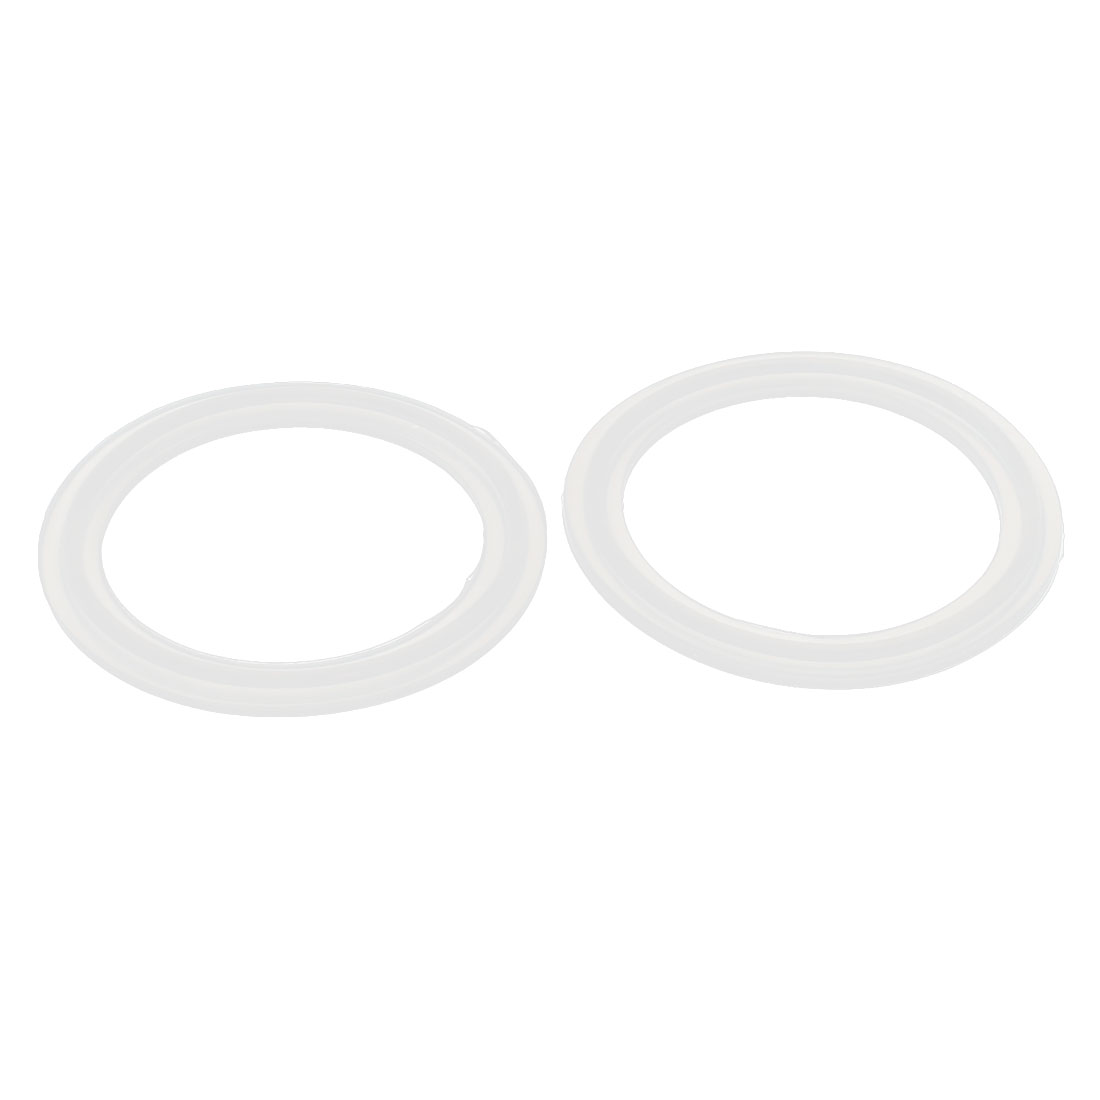 "51mm Silicone Gasket 2pcs for 2"" Tri Clamp Sanitary Pipe Fittings Ferrules"